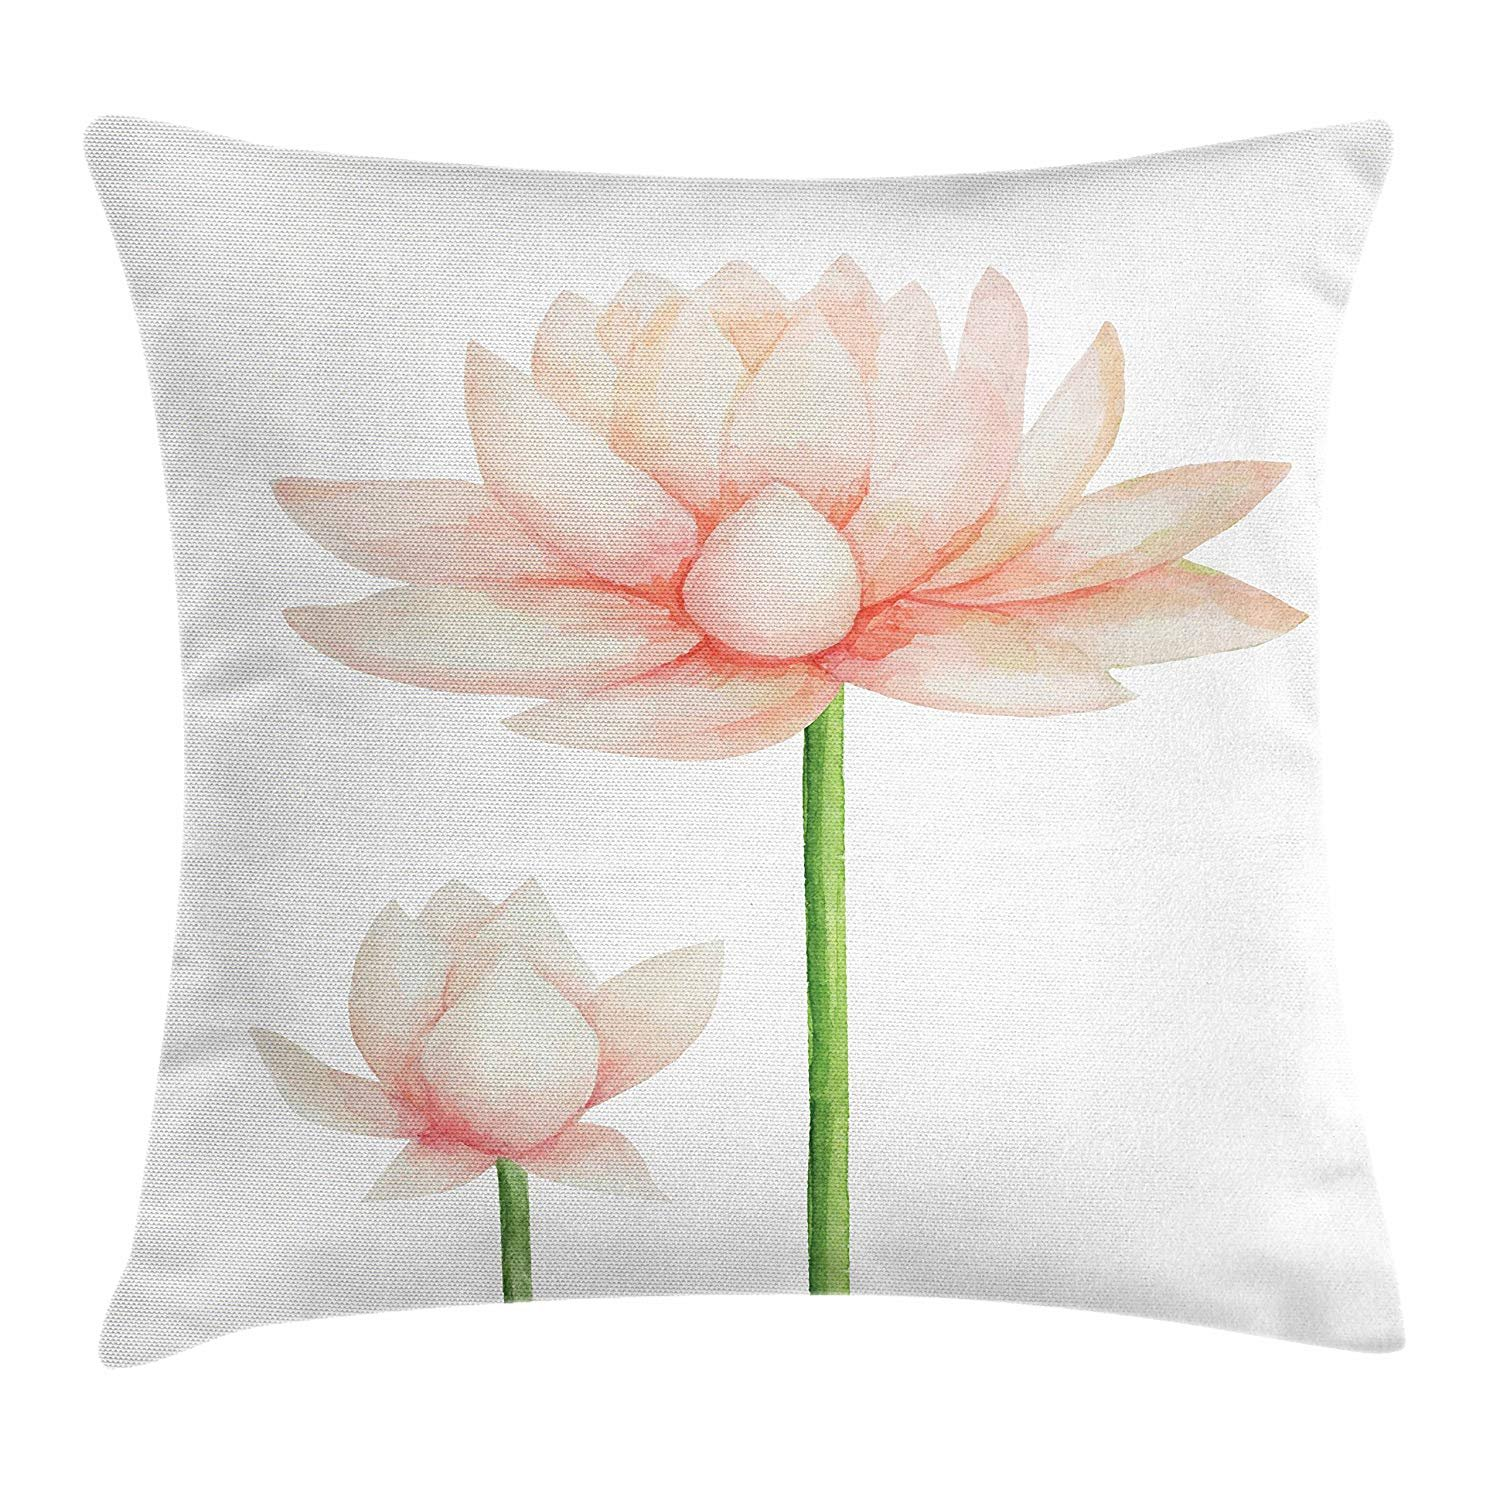 Yoga Throw Pillow Cushion Cover by, Pastel Colored Blooming Lotus Flower Romantic Fresh Garden Plant Spa Theme, Decorative Square Accent Pillow Case, 18 X 18 Inches, Peach Green and White by LISY (Image #1)